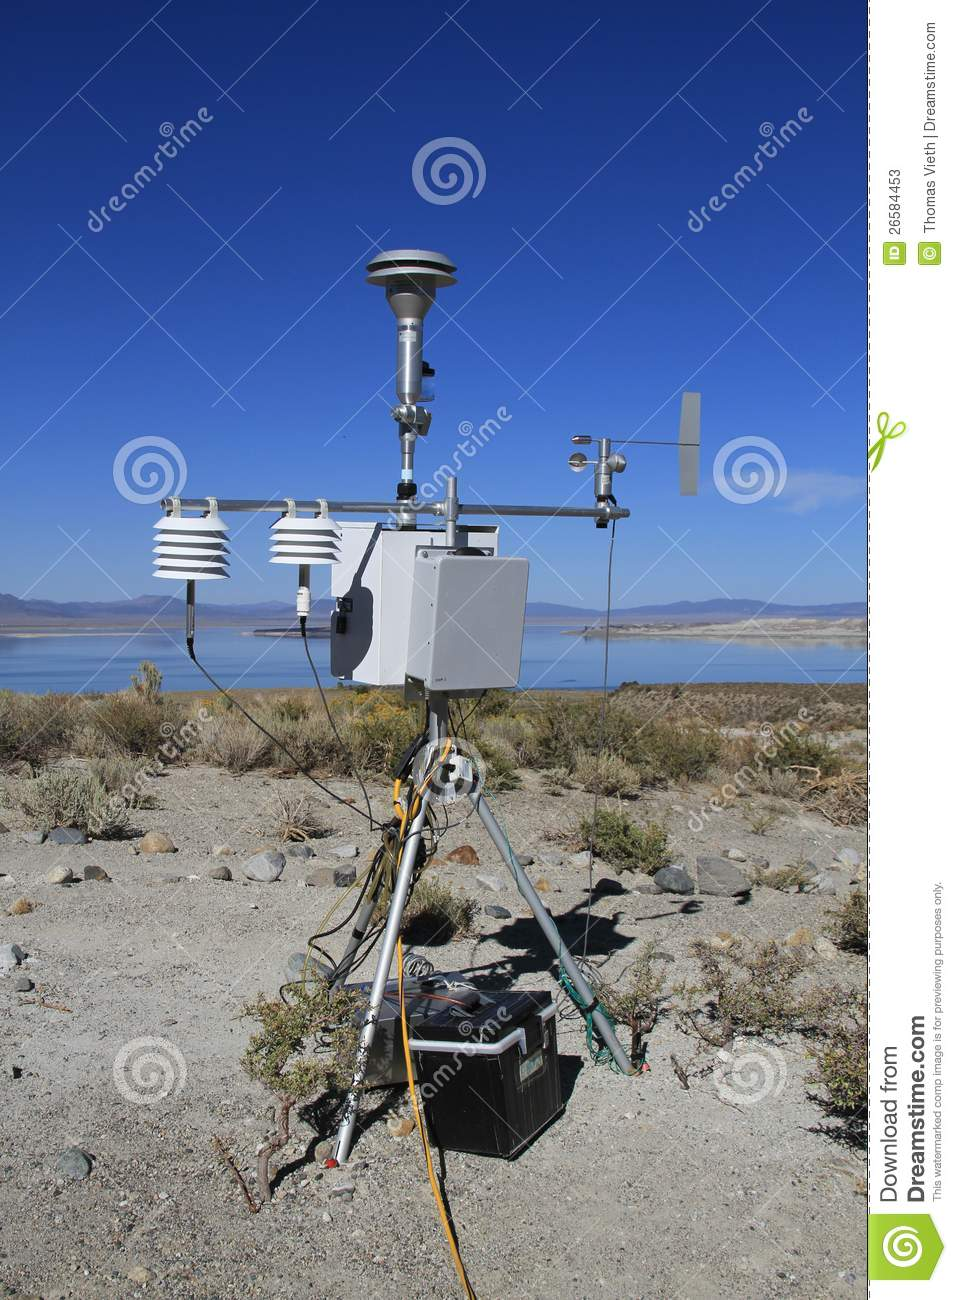 Usa california automatic weather station stock image - Que es una estacion meteorologica ...